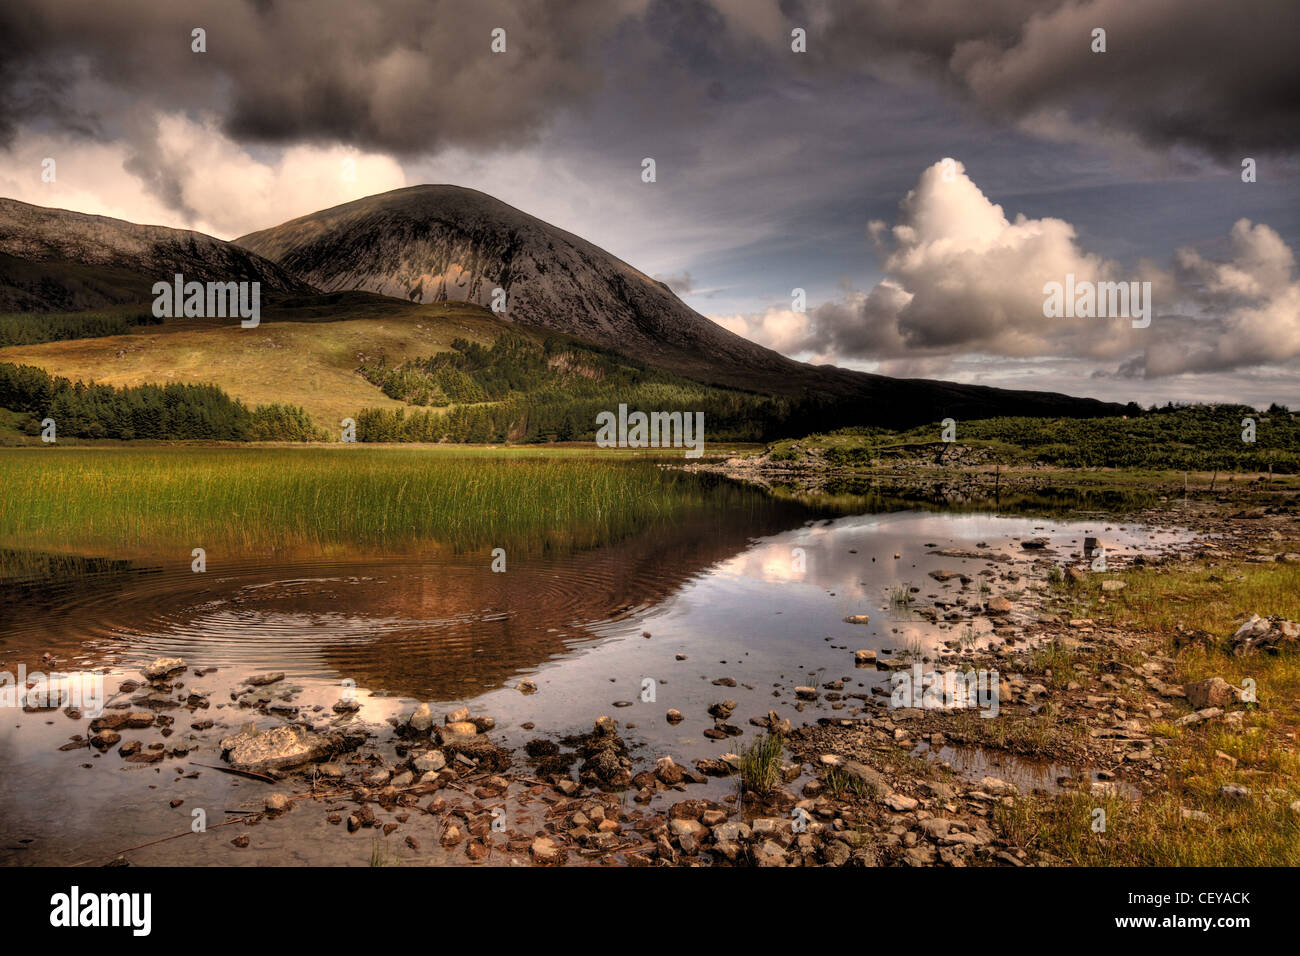 Road to Elgol,I Road to Elgol,Isle of Skye,Scotland,panorama,landscape,from,Scottish,inner,Hebrides,moody,sky,island,gotonysmith,rd,road,spectacular,year,of,the,homecoming,scots,escotia,celtic,wide,view,B8083,Broadford,to,Torrin,and,Elgol,road.,Reflect,Isle of Skye,Elgol Road,Isle of Skye,Road,to,Elgol,Isle,of,Skye,Scotland,gotonysmith,rocks,rock,mountain,walk,walks,reflections,lock,loch,lake,gotonysmith,Buy Pictures of,Buy Images Of